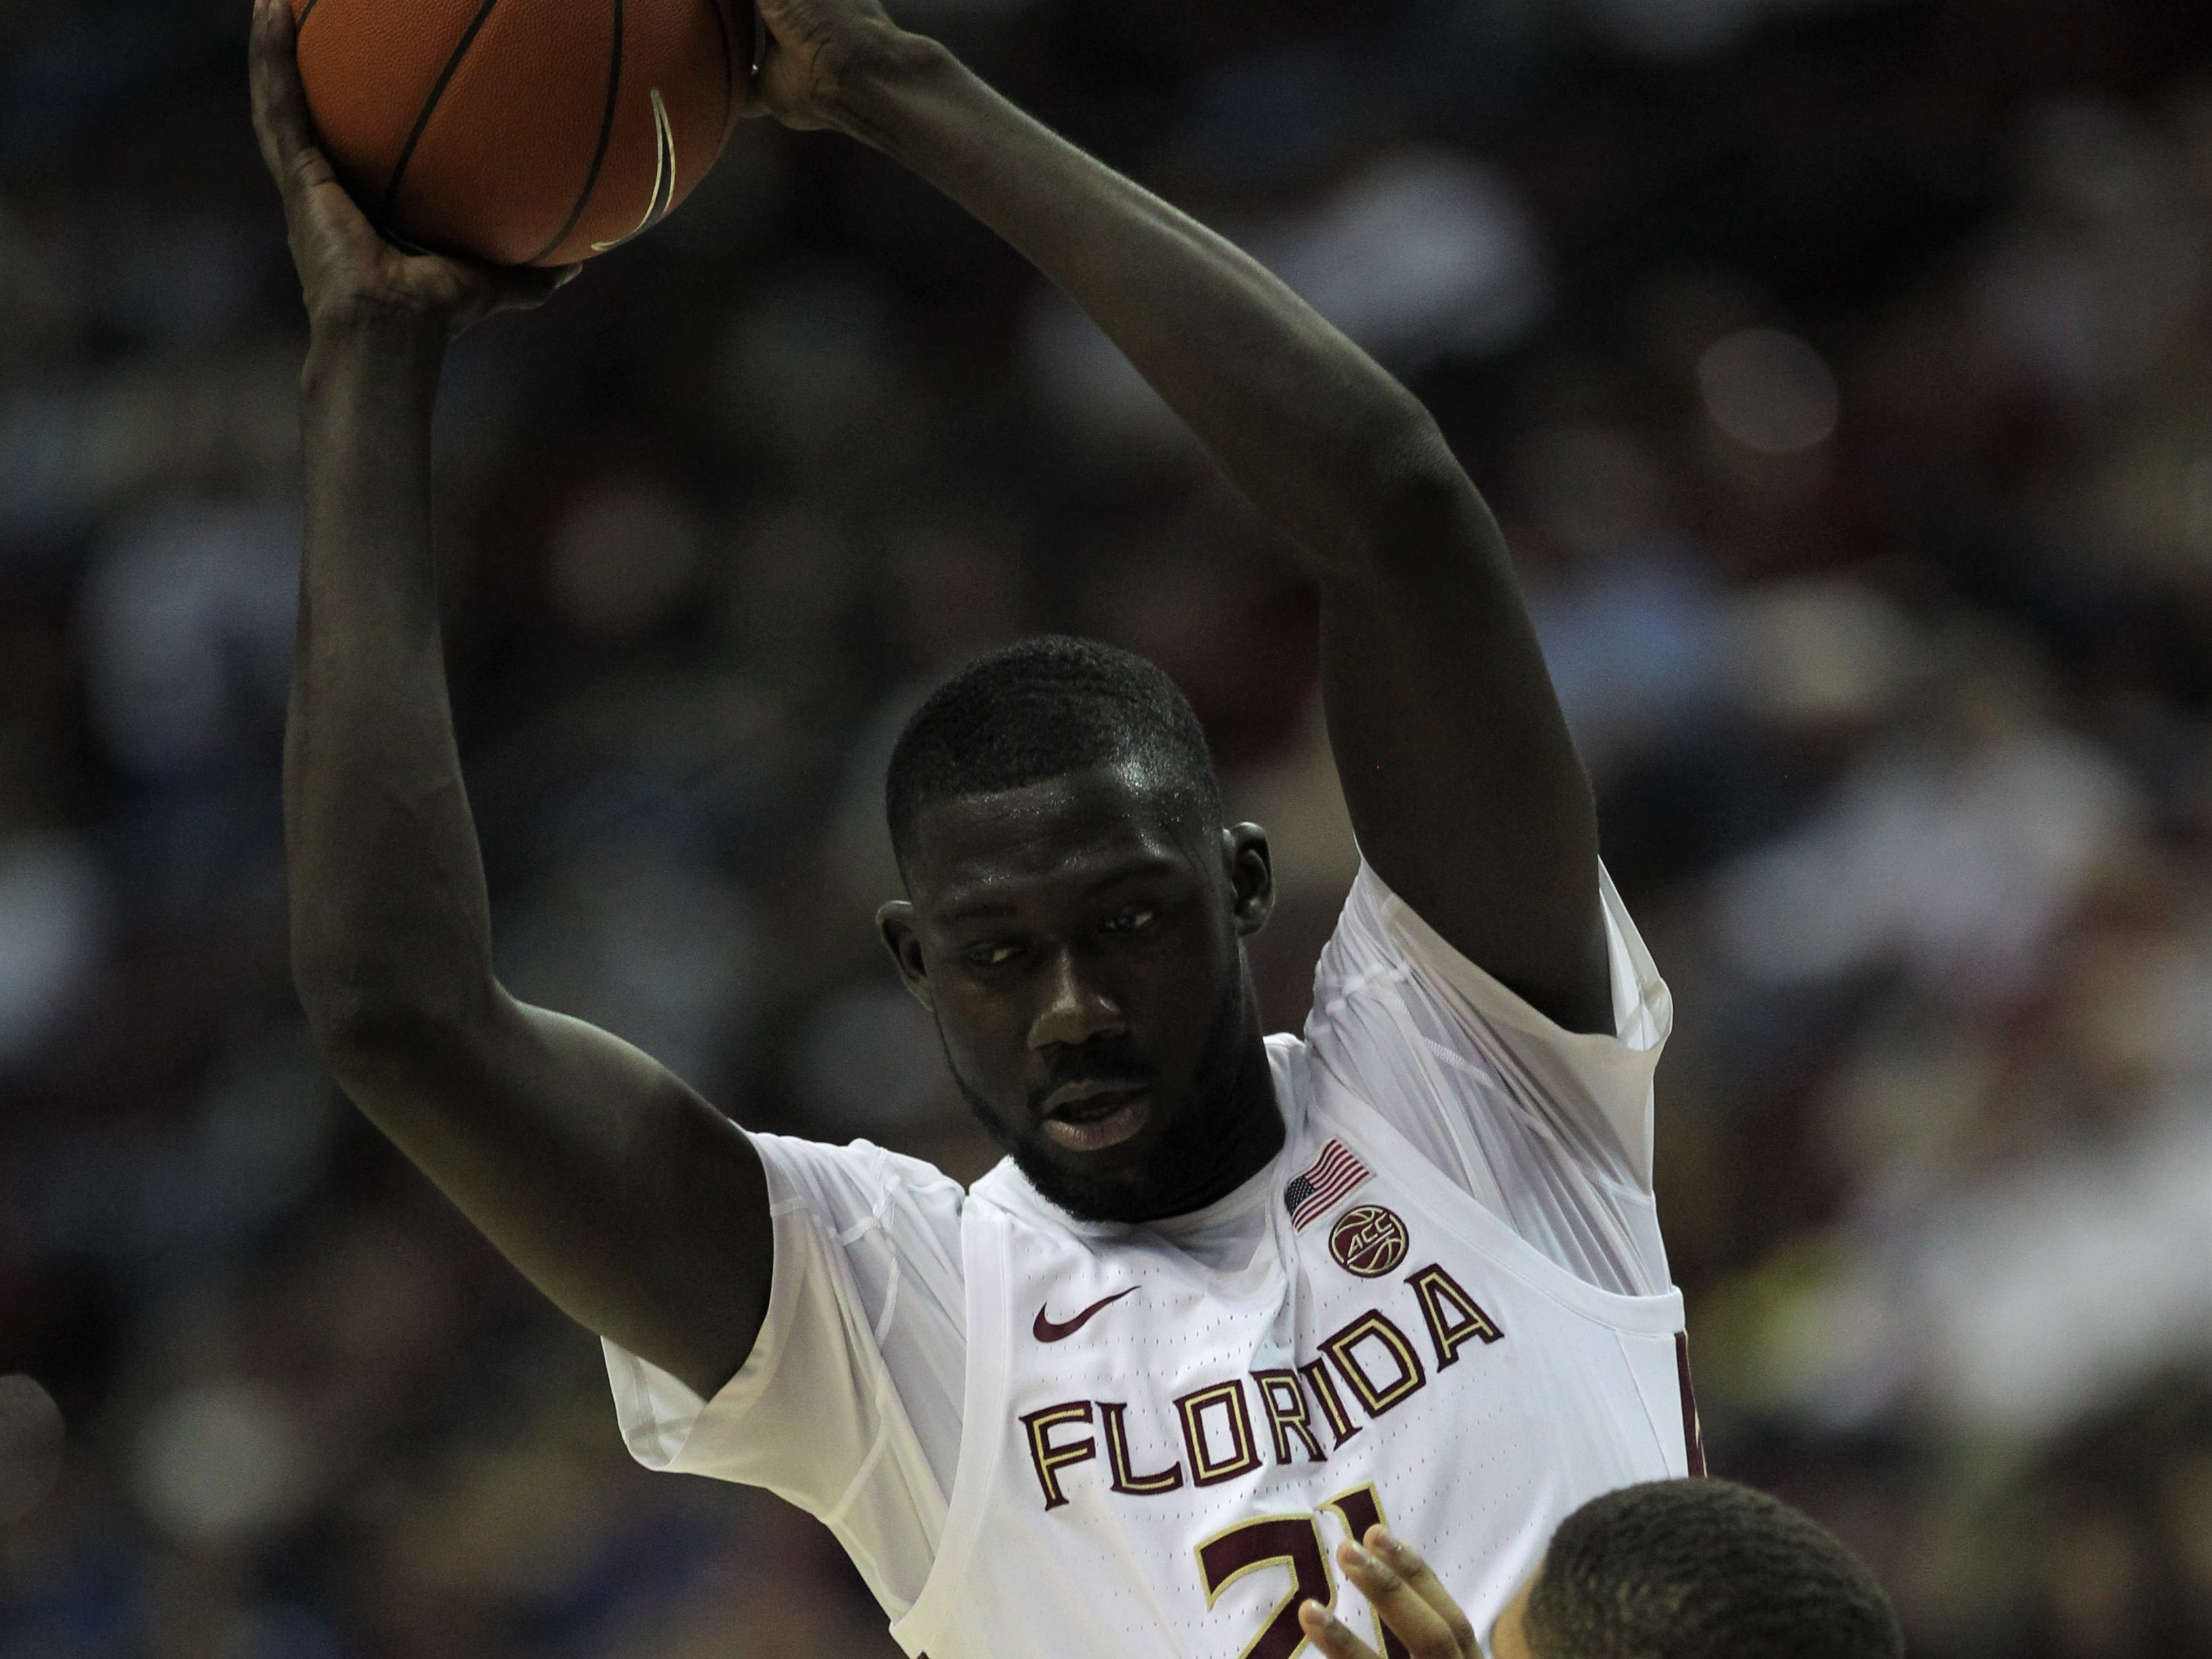 Florida State center Christ Koumadje works against Florida's Isaiah Stokes during the Sunshine Showdown game Tuesday at the Tucker Civic Center.